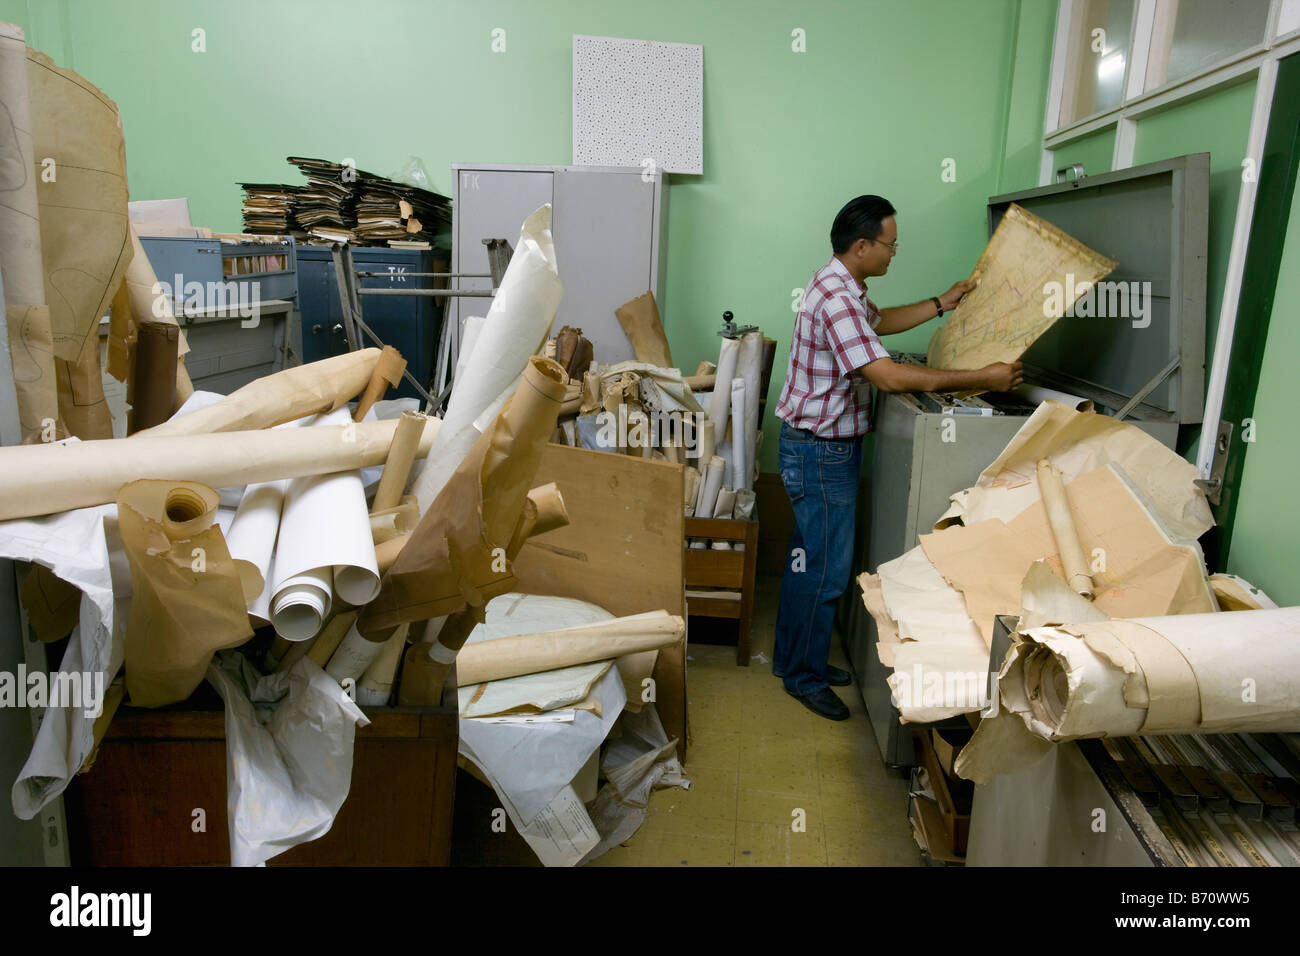 Suriname, Paramaribo, Land registry office called Domeinkantoor. Files archives. - Stock Image